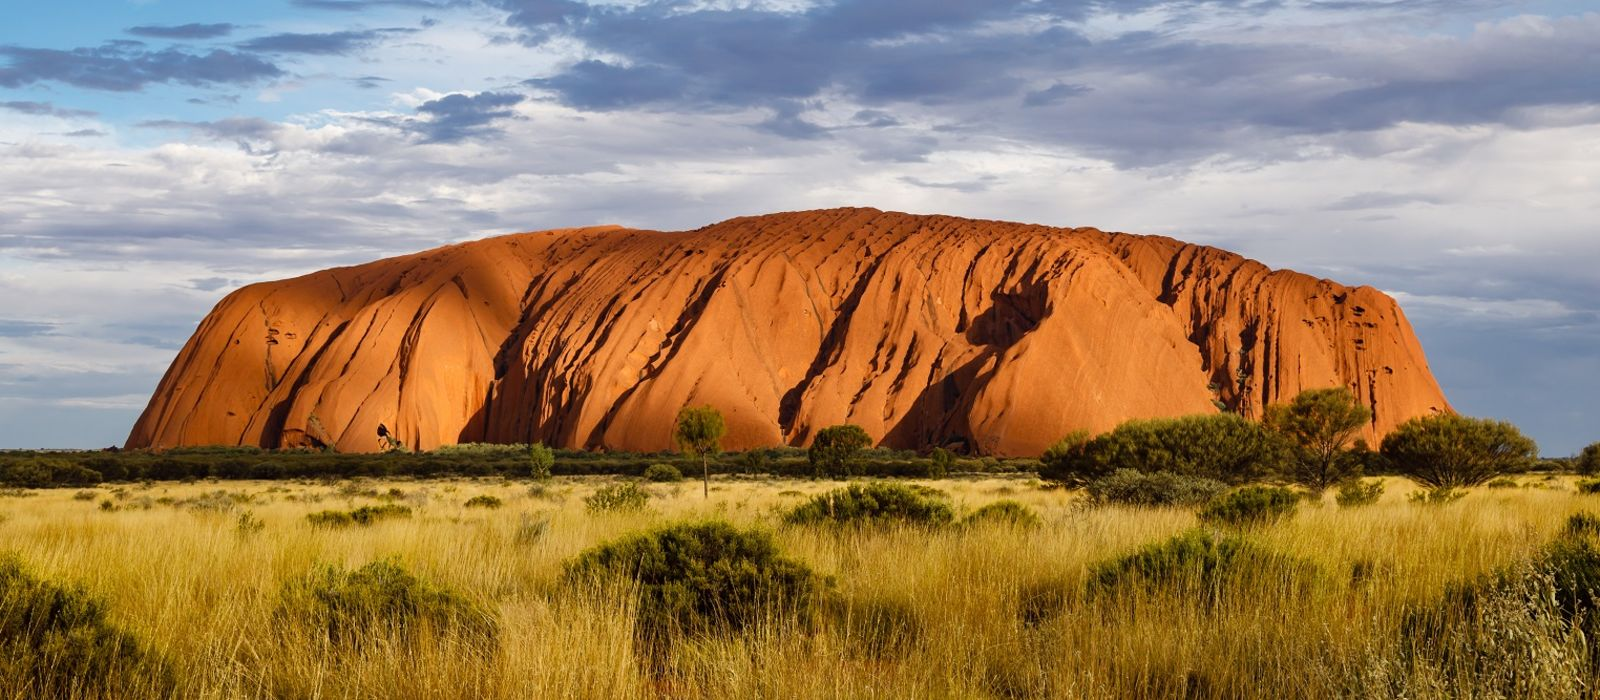 Outback, Uluru & the Great Barrier Reef Tour Trip 1